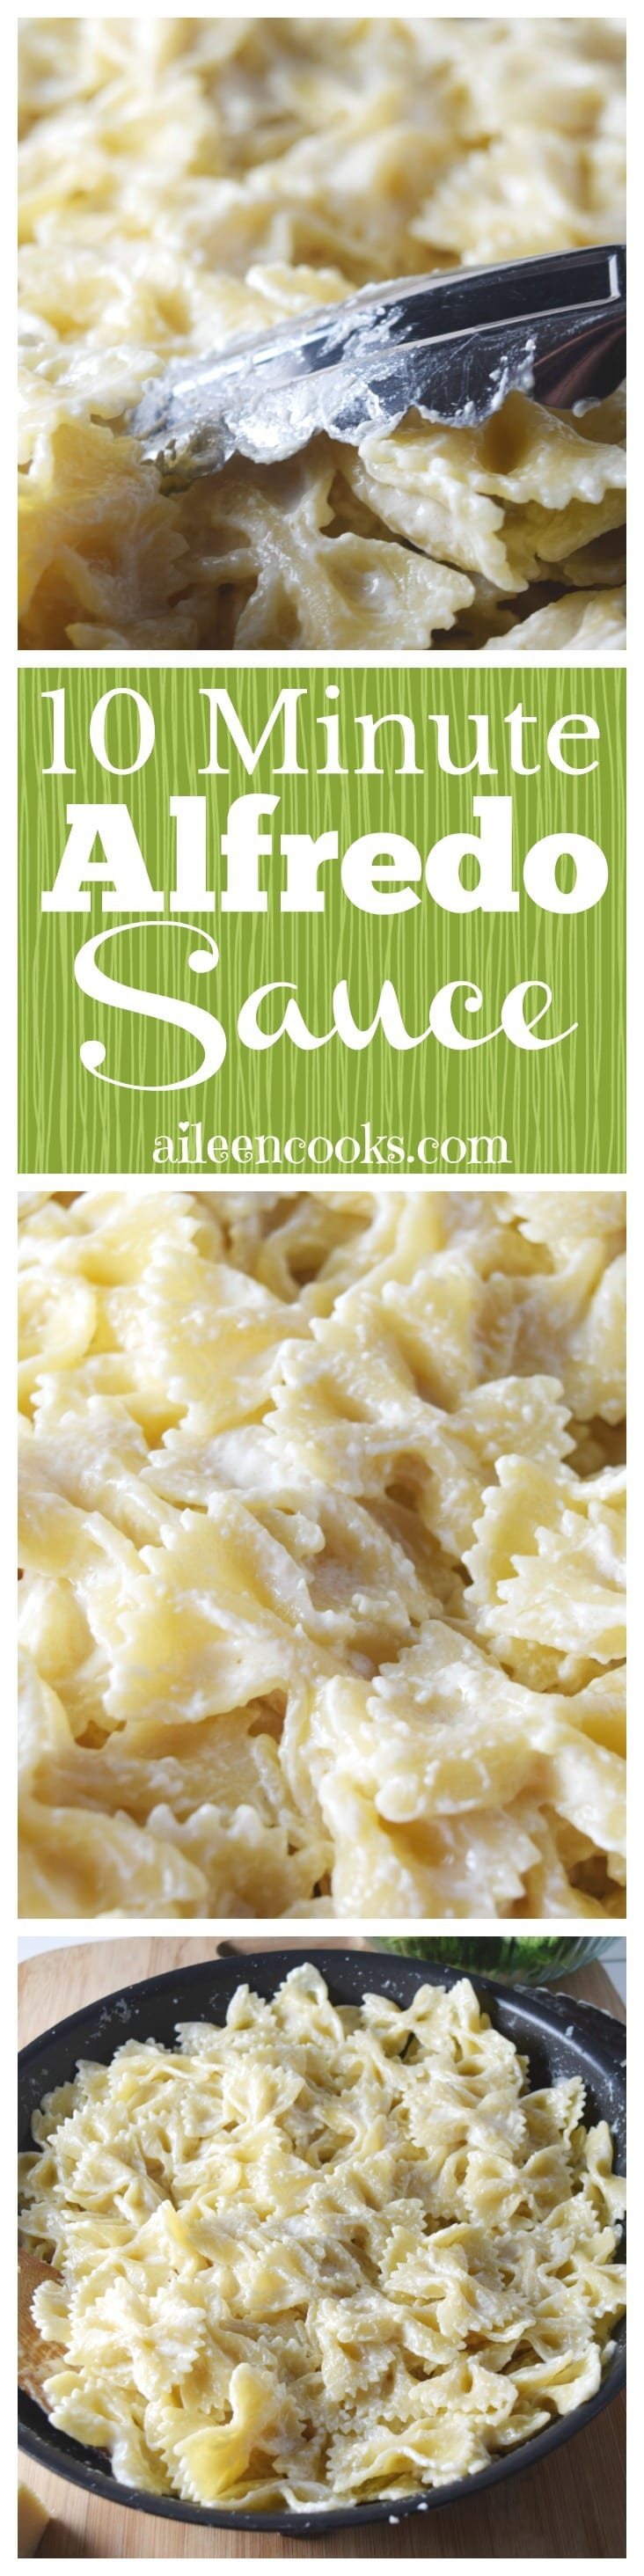 10 minute Alfredo sauce. With just a few simple ingredients, you will have restaurant quality Alfredo sauce ready in just 10 minutes. This sauce is delicious on a pasta like fettuccine or as a pizza sauce.